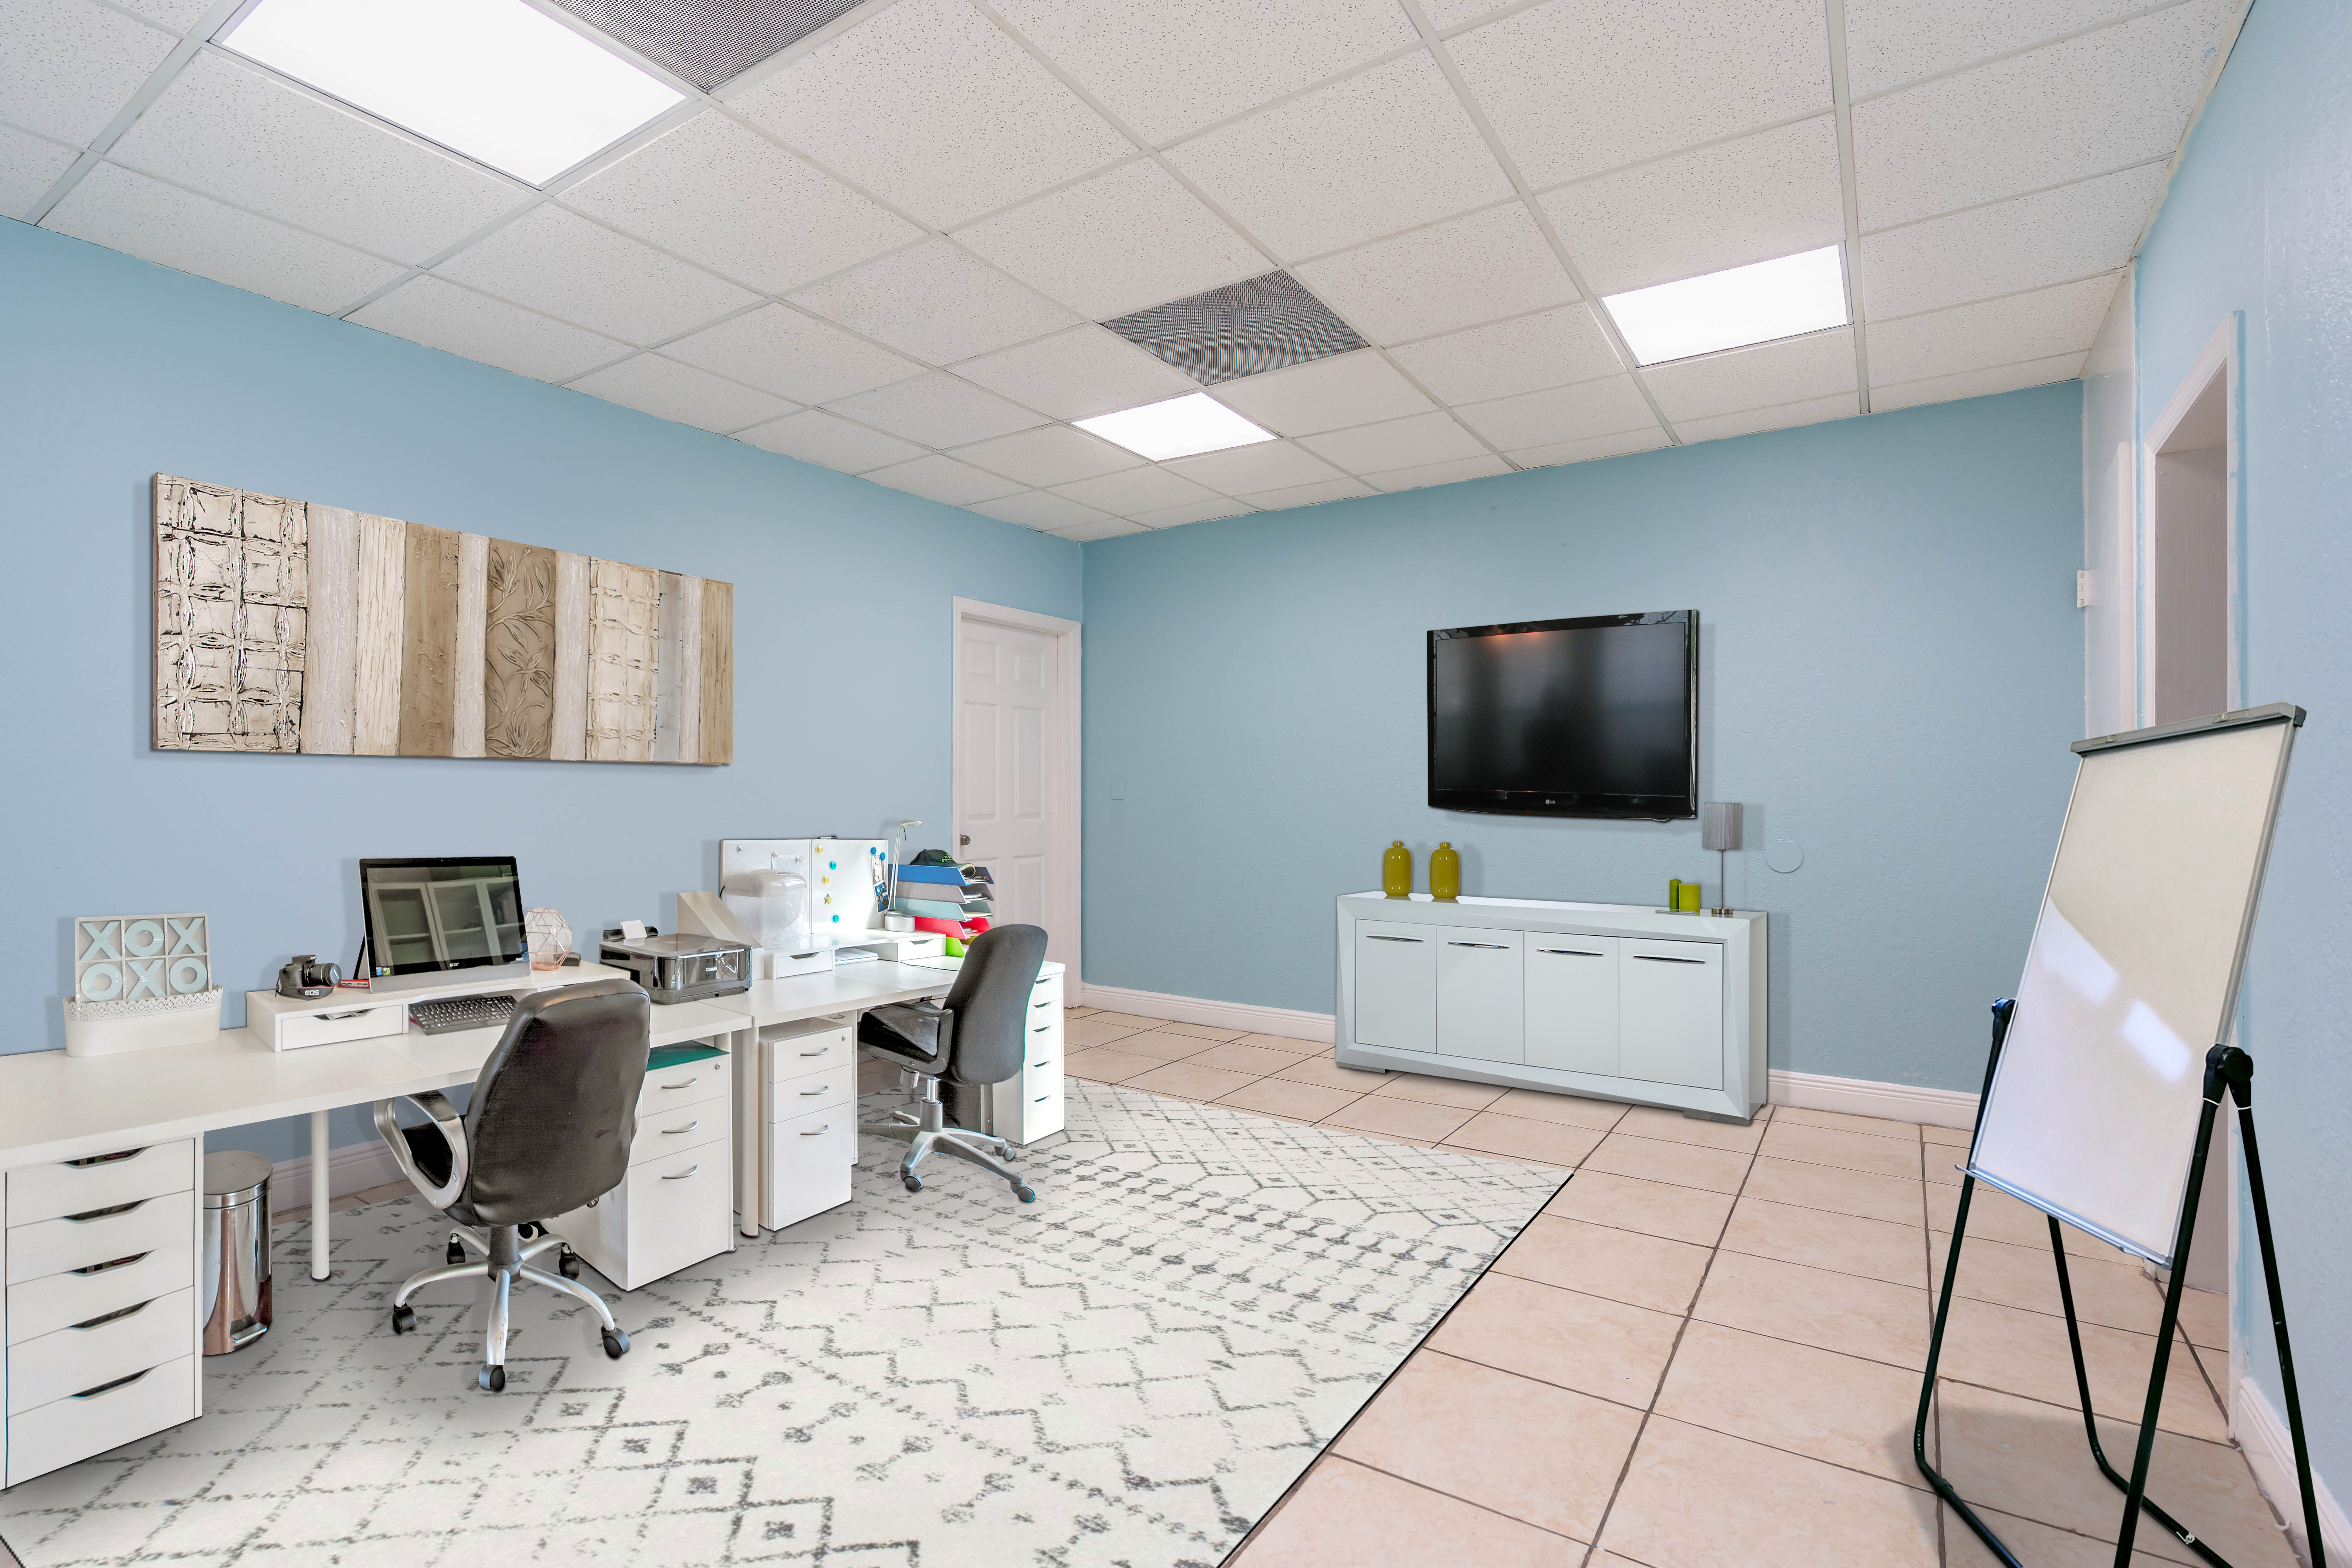 Warehouse For Rent In Miami Fl Office And Commercial Space For Rent In Miami Warehouse Renting Llc